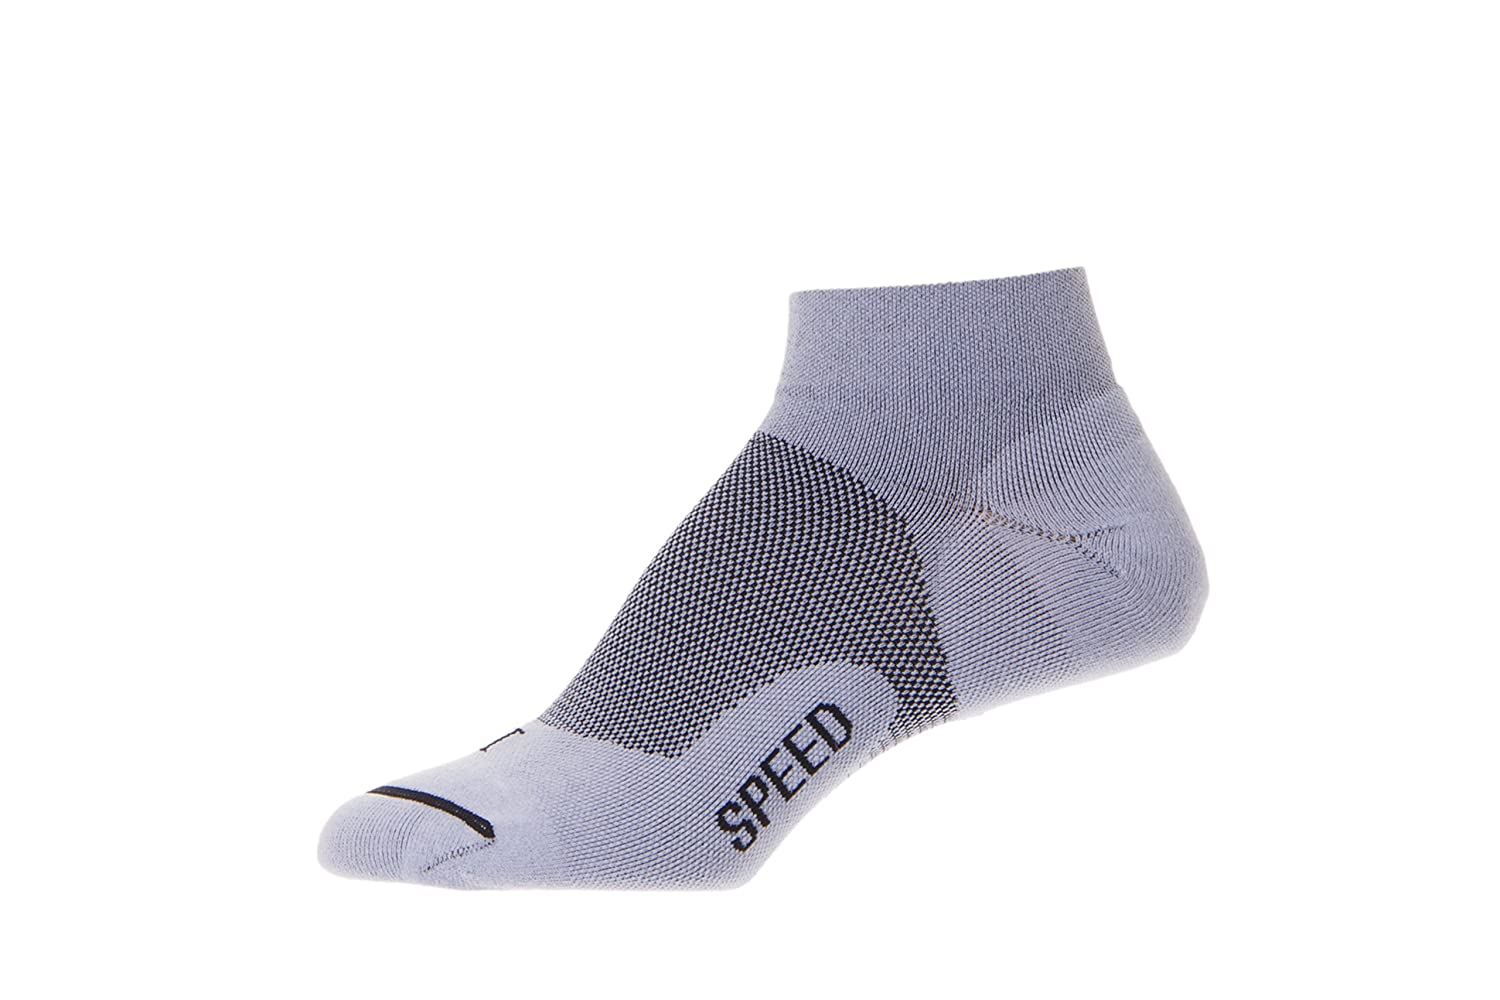 C.S.I. SpeedFreak Low Cut Running Socks Made in the USA